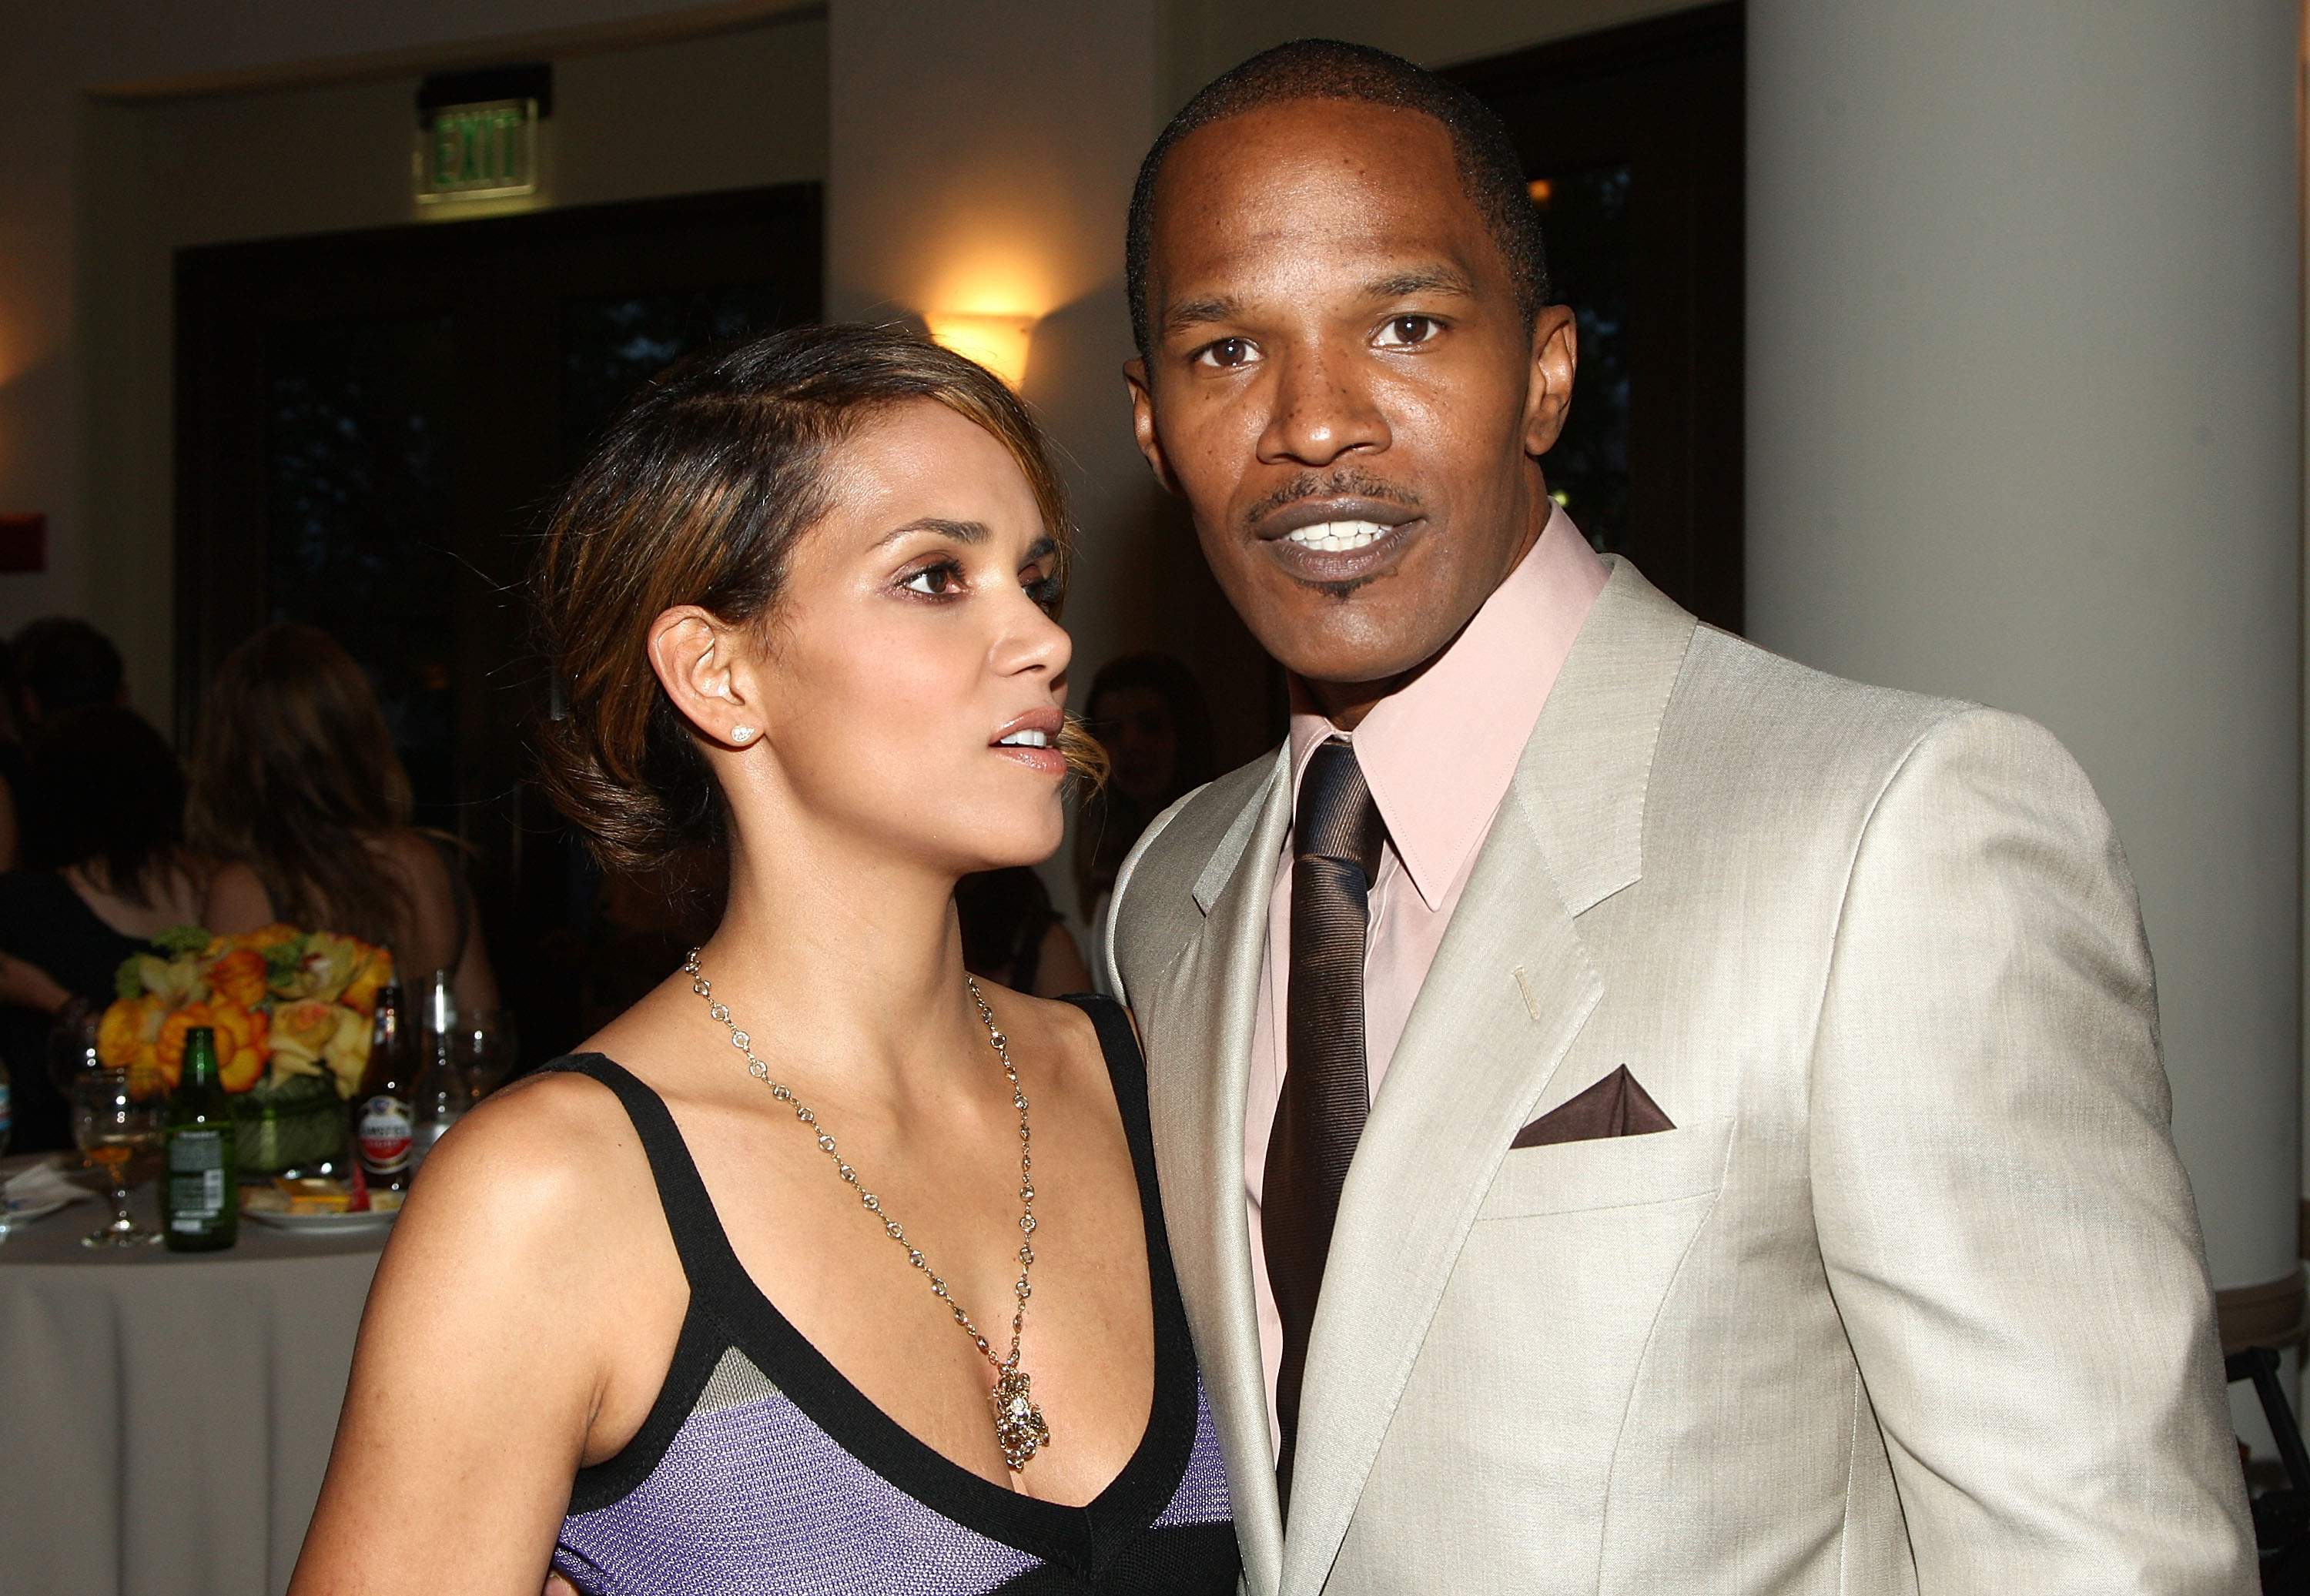 63851_Halle_Berry_The_Soloist_premiere_in_Los_Angeles_03_122_347lo.jpg